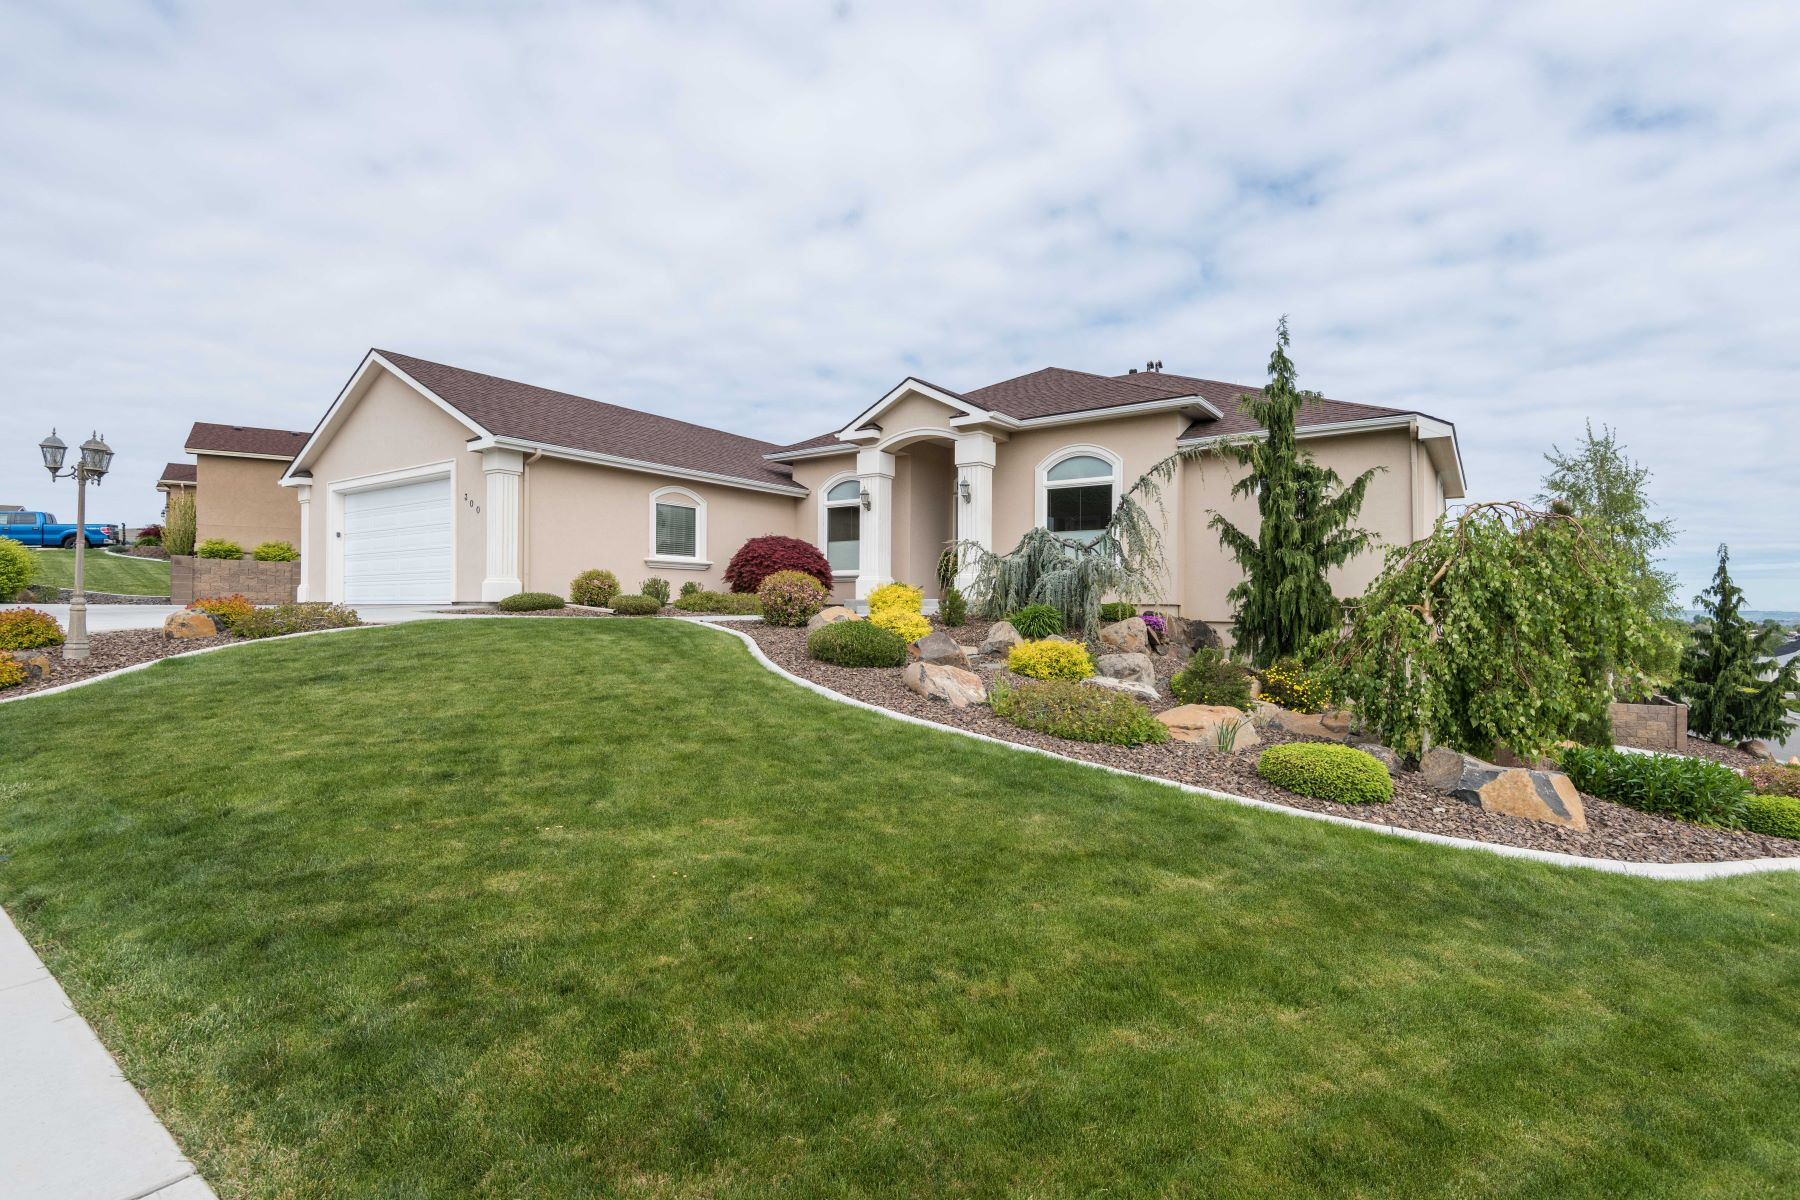 Single Family Home for Sale at Sky Meadows with View 300 Soaring Hawk St Richland, Washington 99352 United States